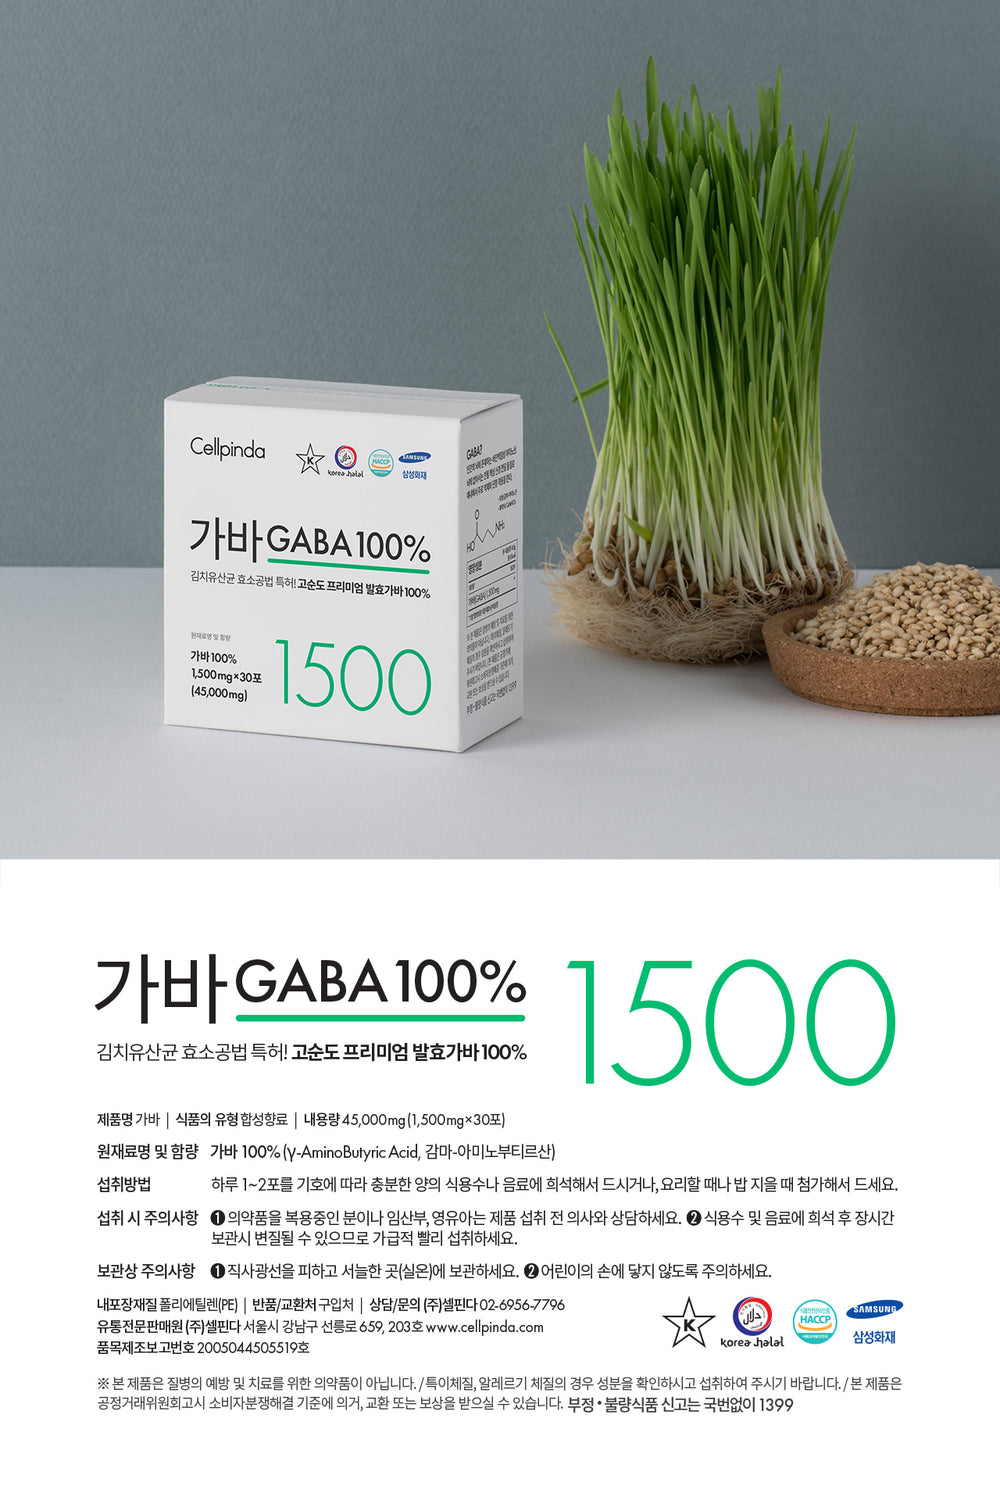 Cellpinda GABA 100%_1,500mg_Natural Relief of Stress & Anxiety